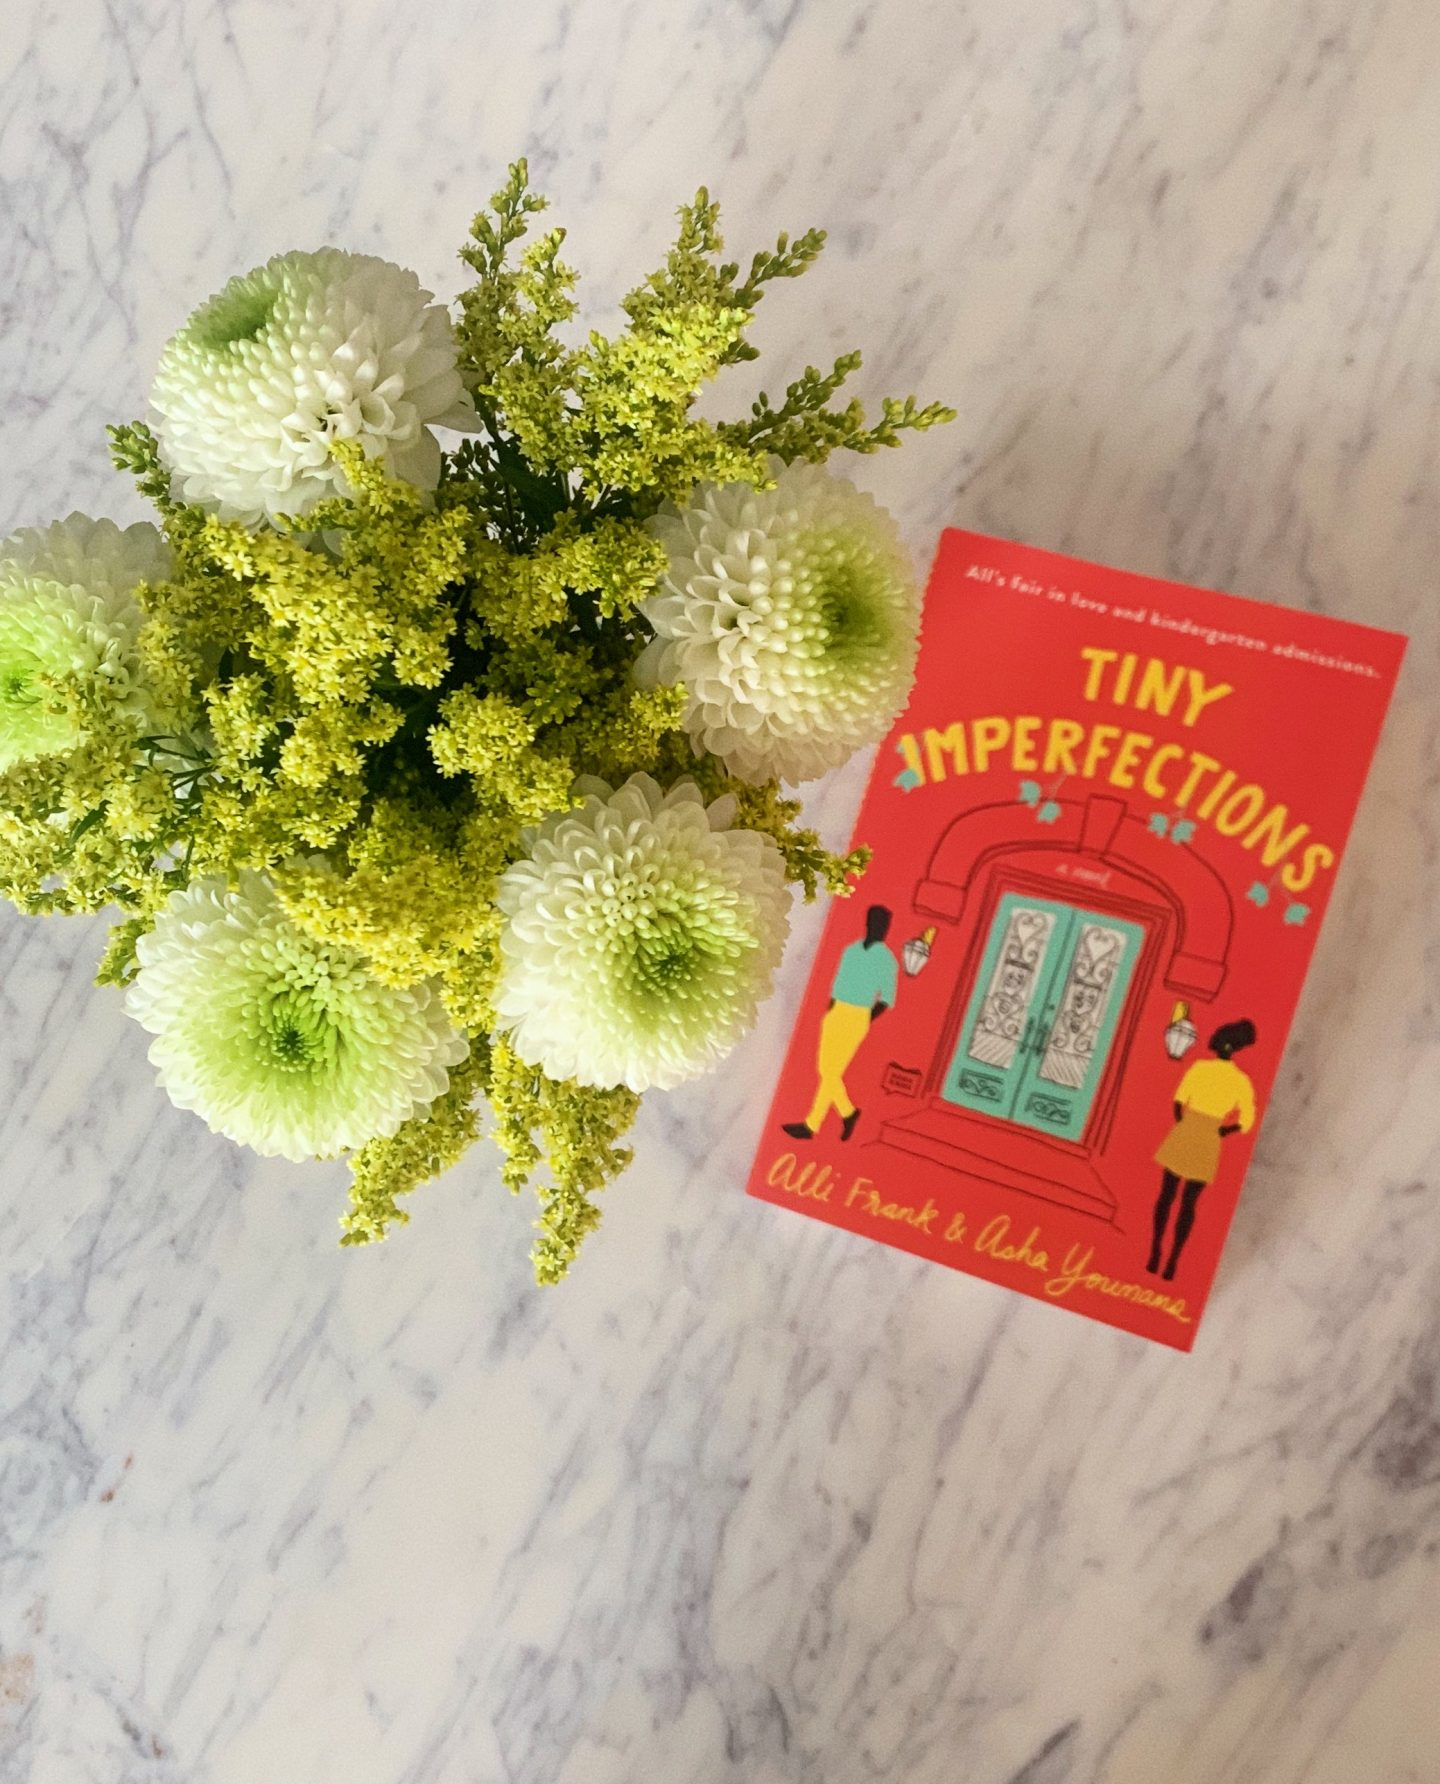 June's Book: Tiny Imperfections